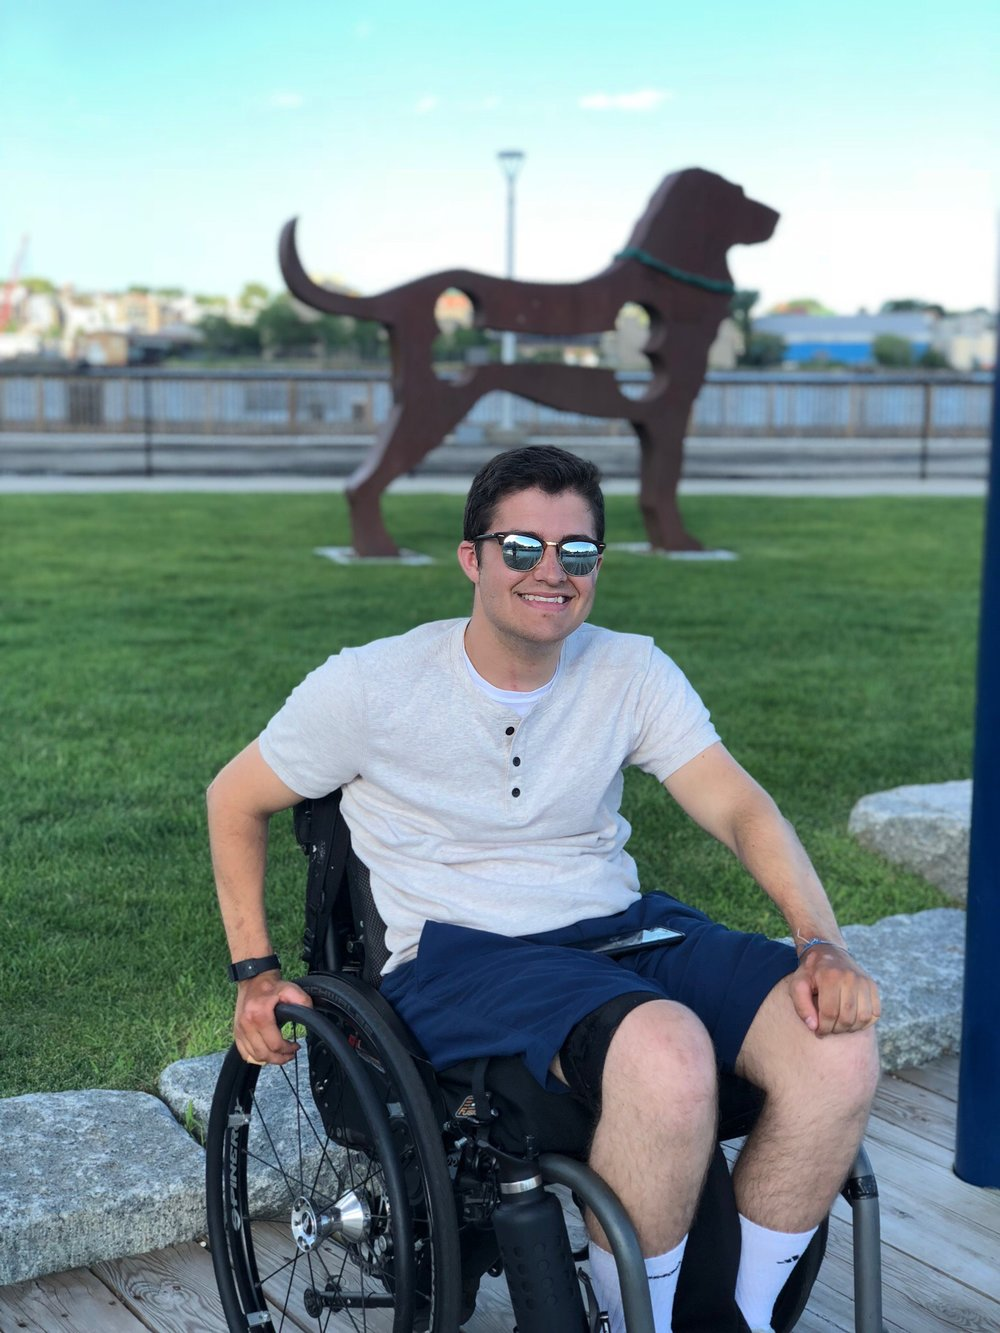 Jack Gerard  C6, Asia A, Quadriplegic  -Injured in 2016  -Since injured I've focused on going back to college, workout out, getting back independence, and spending some time in the office.  -Recreational hobbies include hand-cycling, RC drones, sightseeing, and nature strolls.